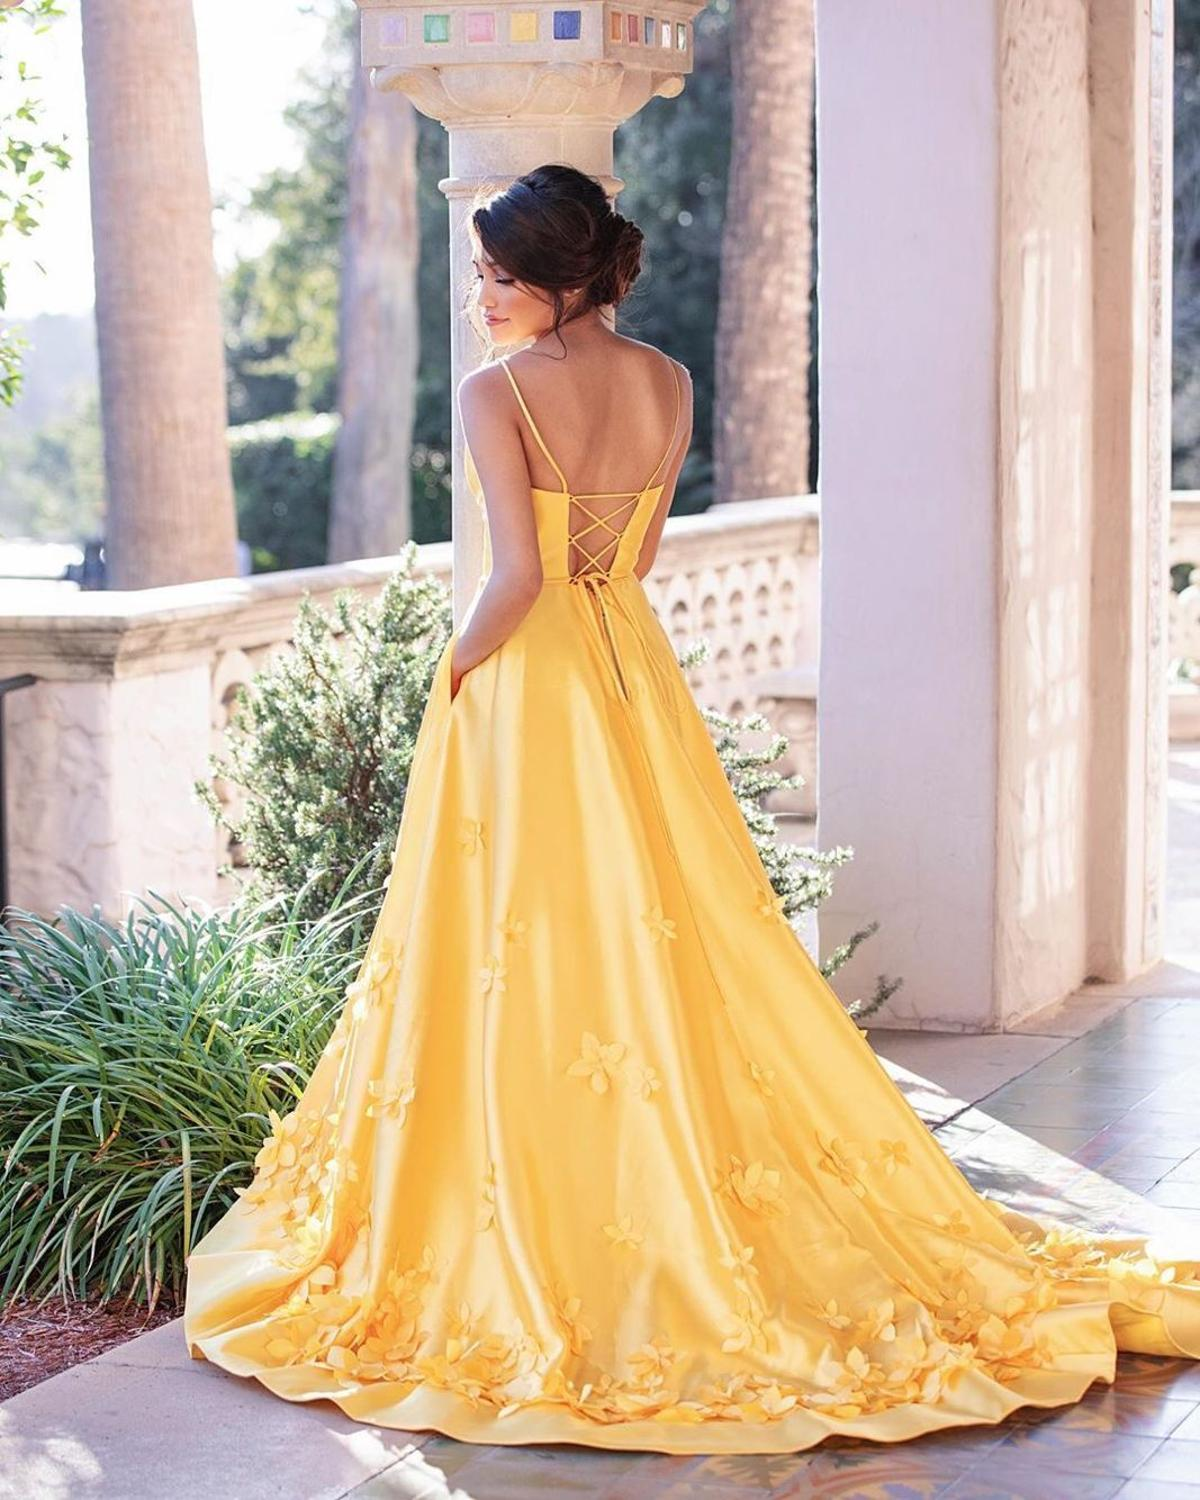 Sevintage Elegant Spaghetti Strap Satin Long Prom Dresses Backless 3D Flowers Evening Gowns  Formal Woman Party robe de soiree